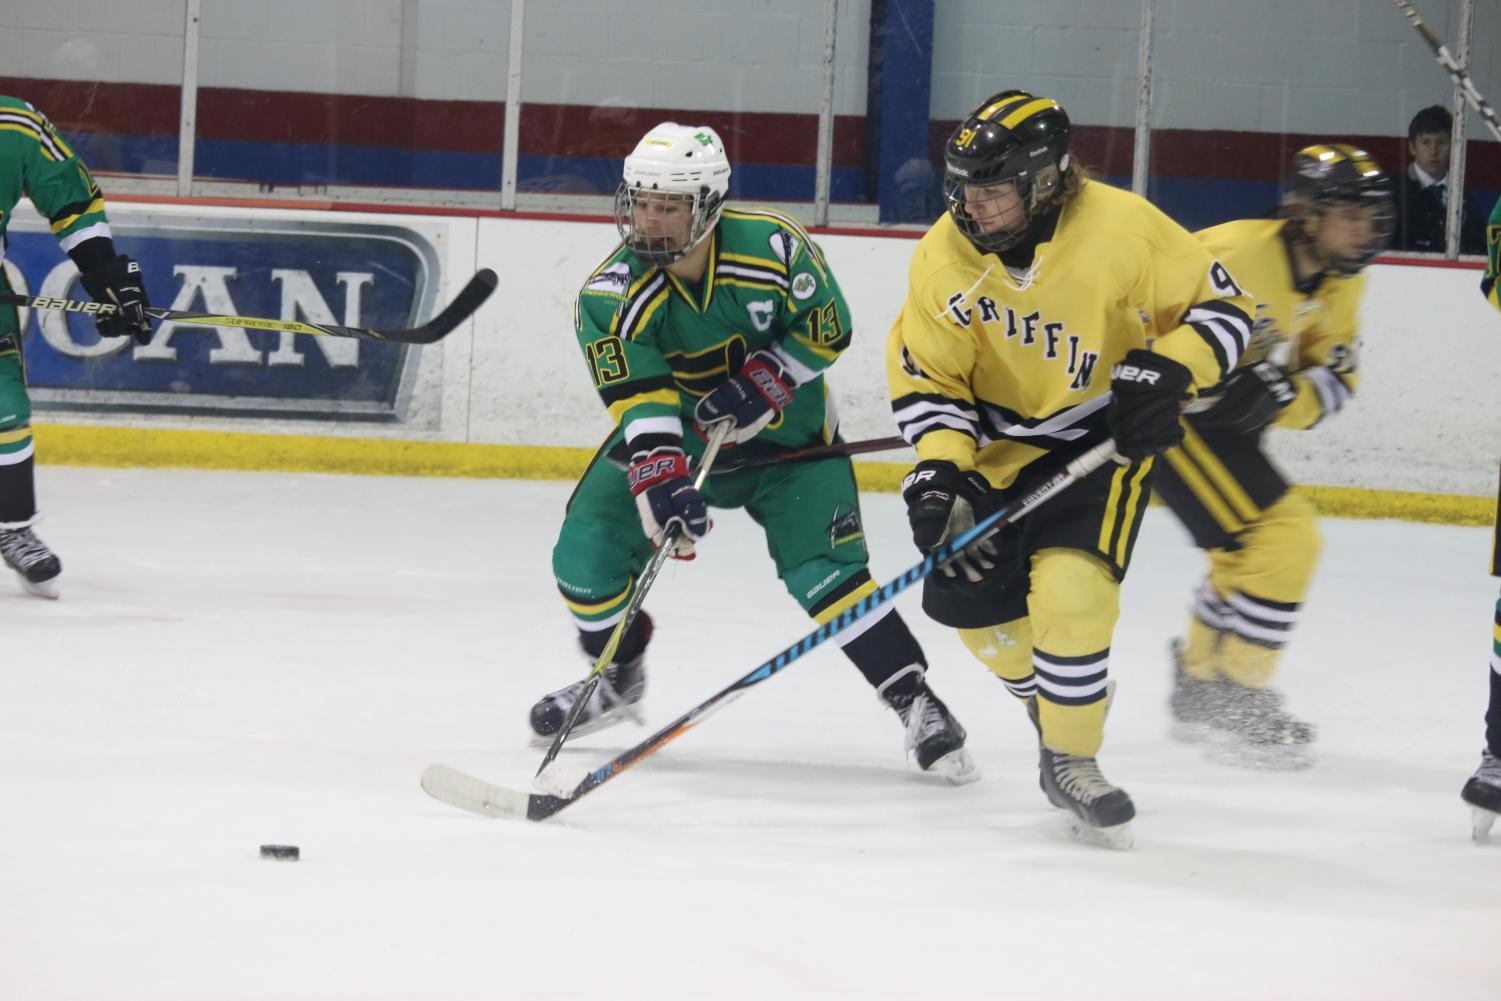 Forward, Hunter Heilmann (12, #13)